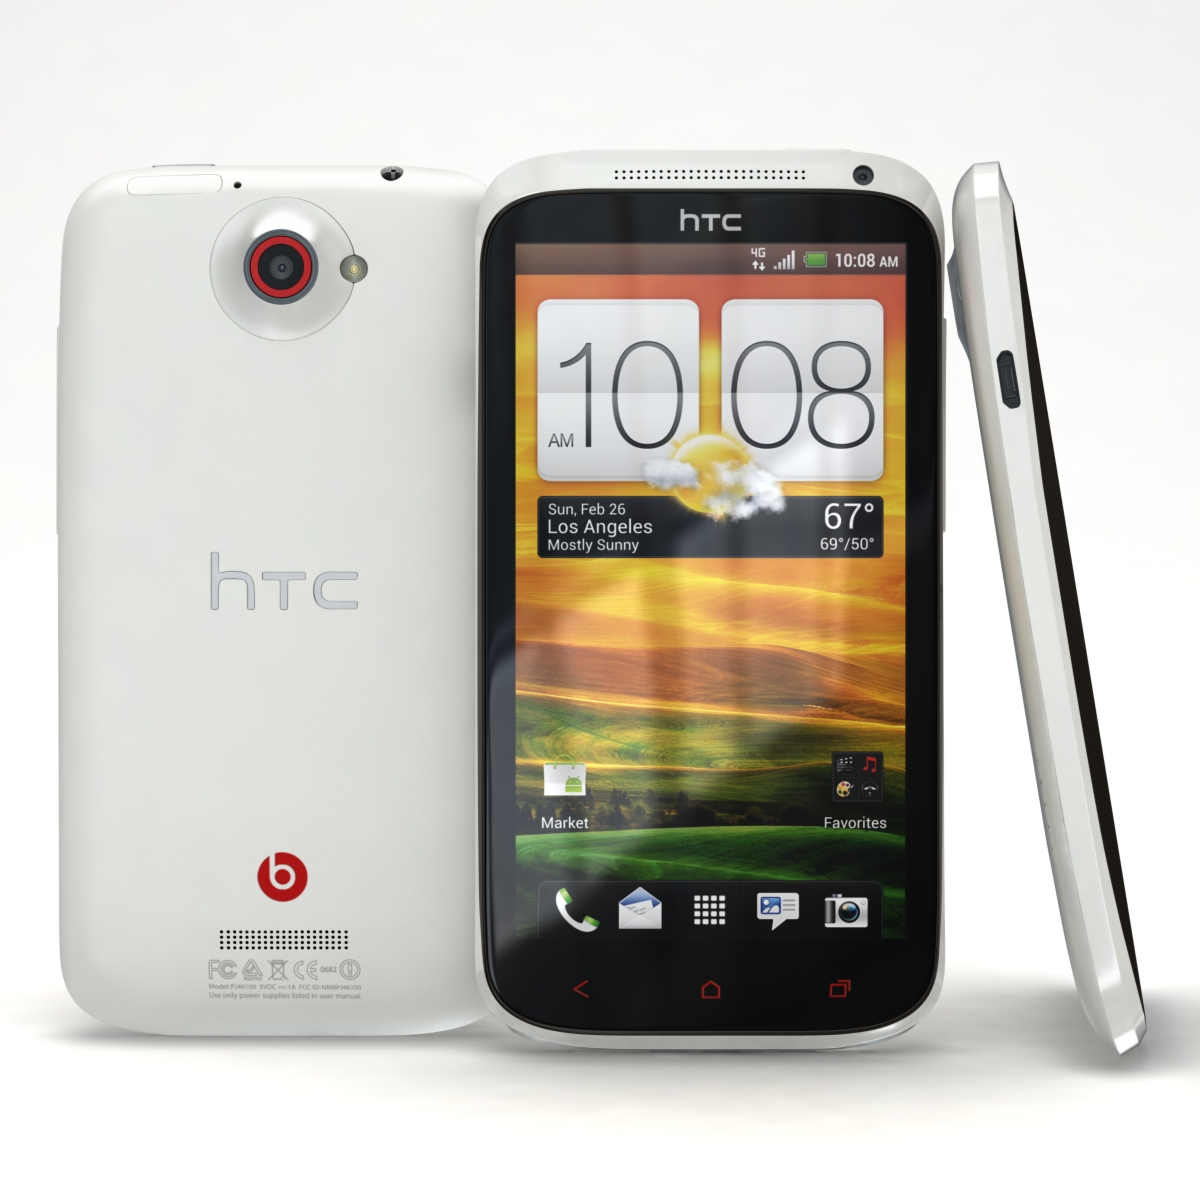 htc one x+ polar white 3d model 3ds max fbx c4d lwo obj 151396